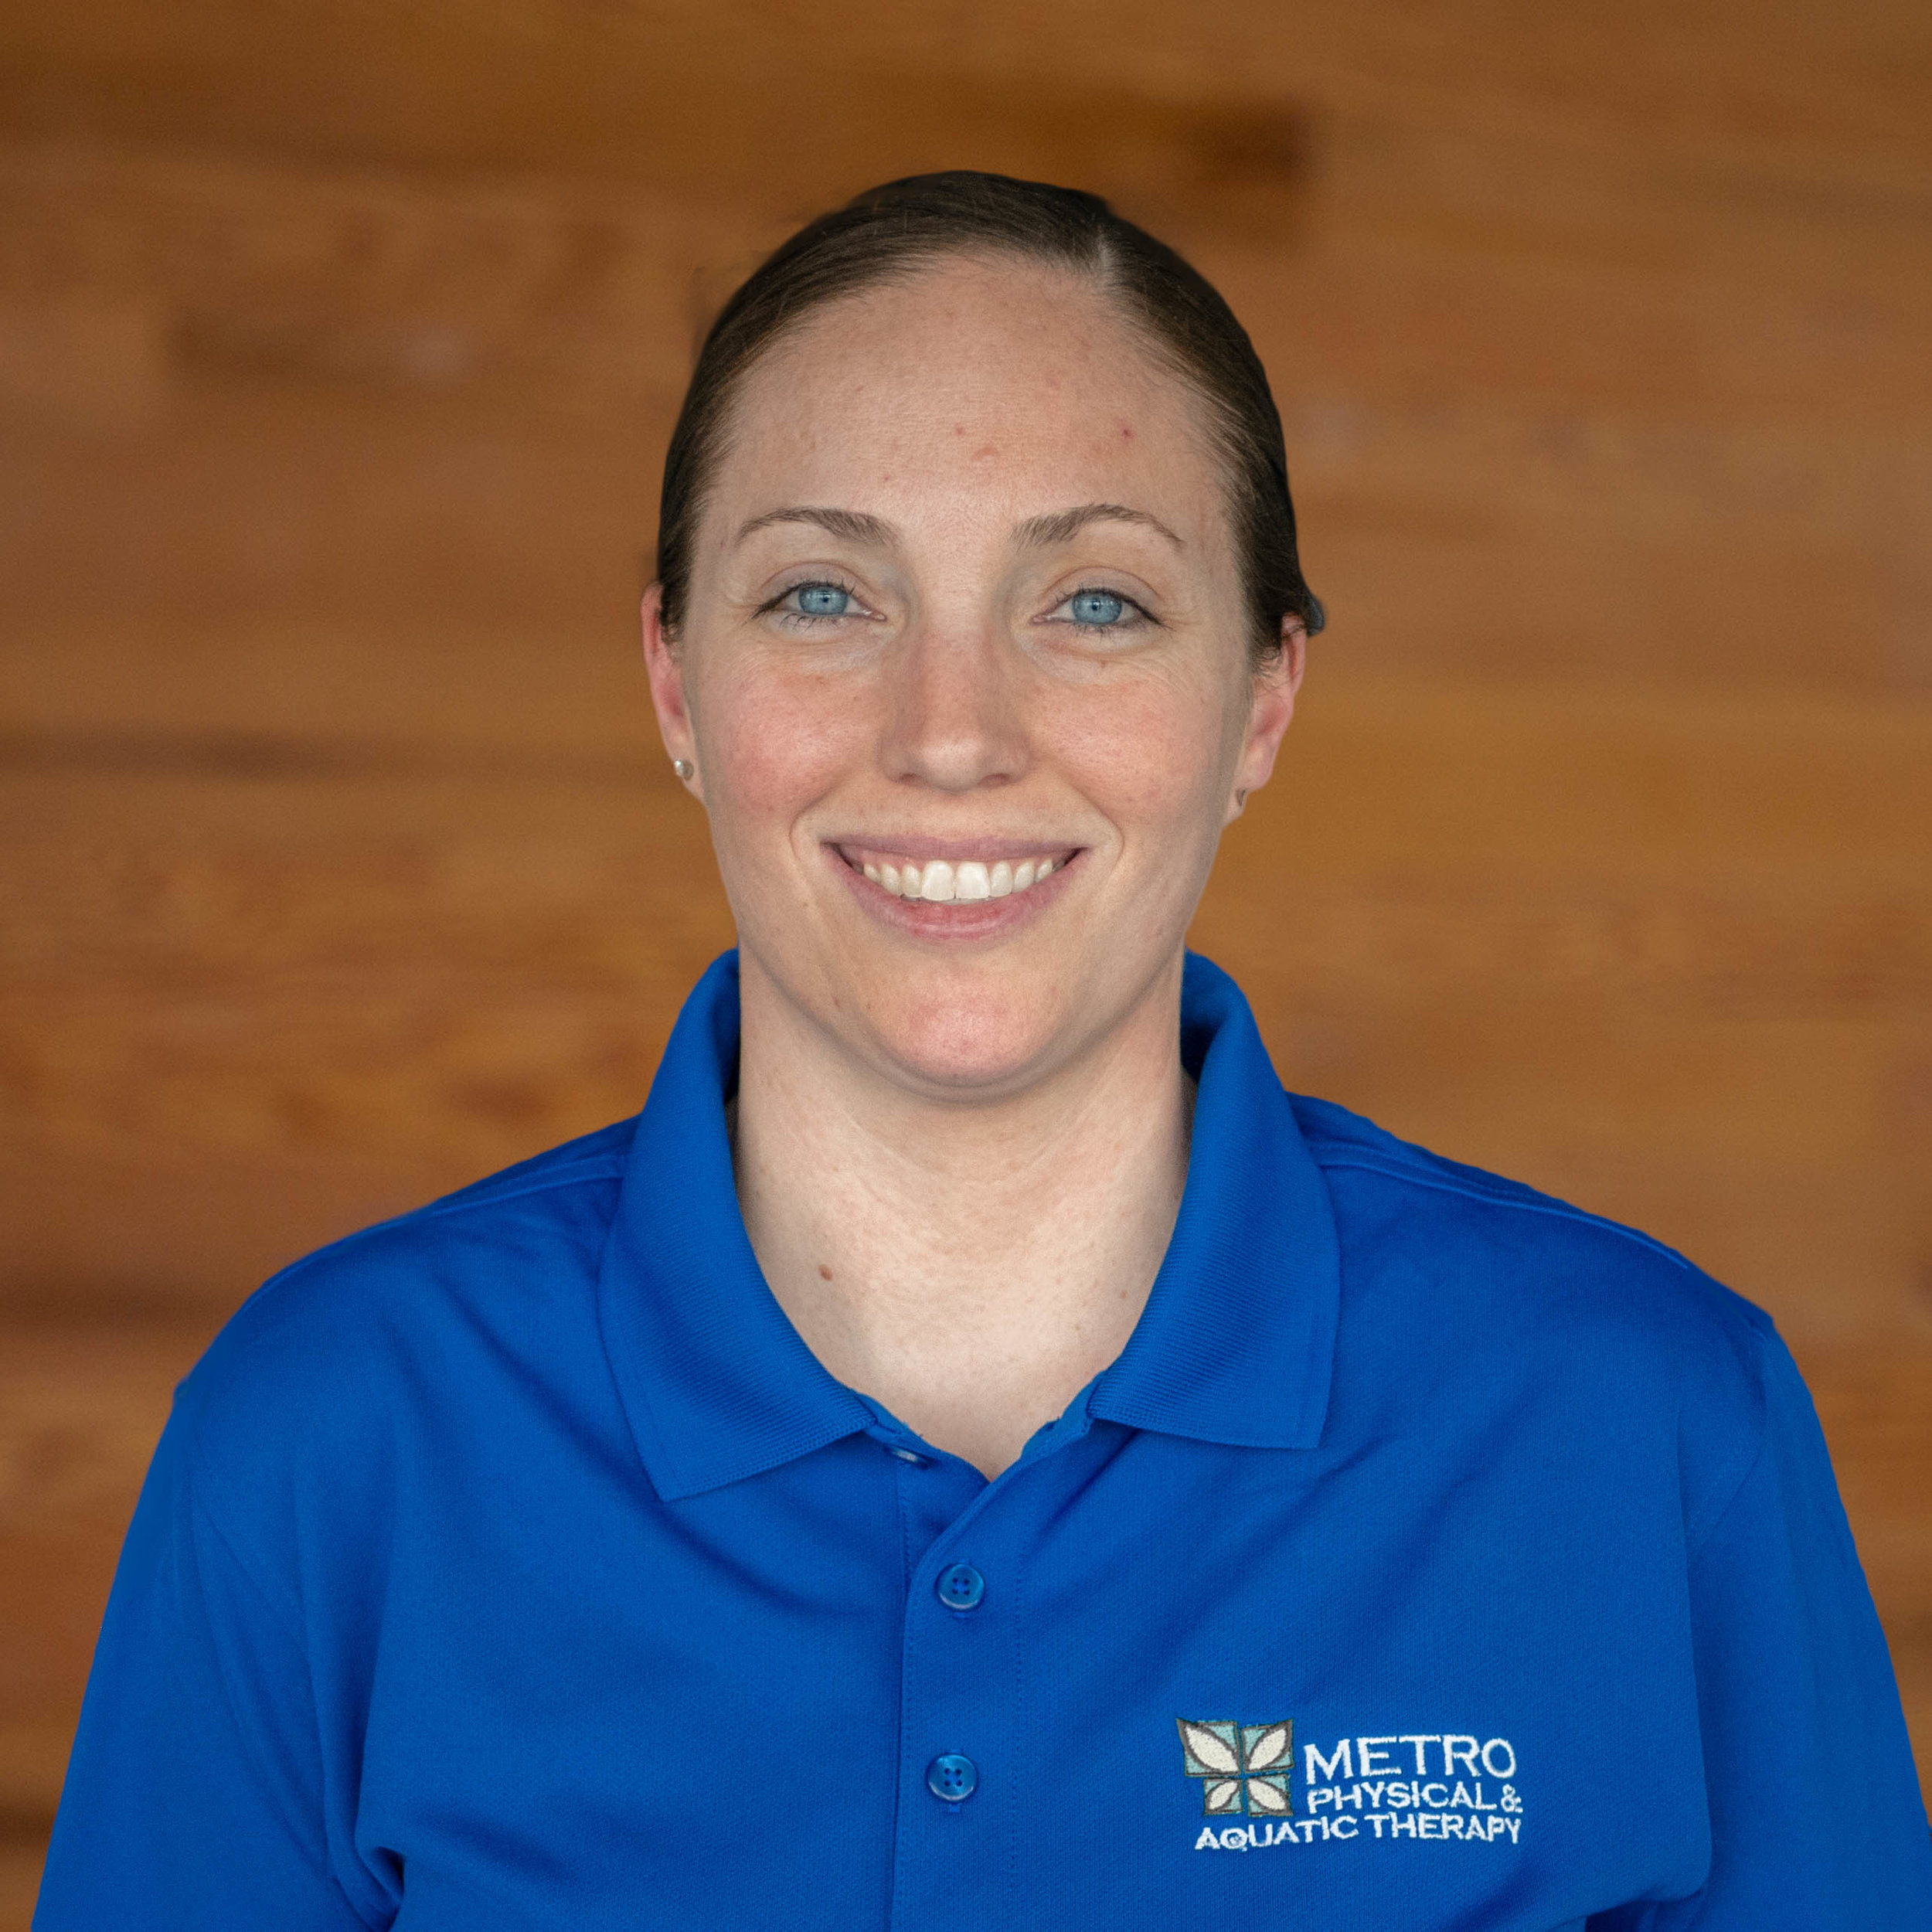 Danielle Simmons is a Phyiscal Therapist at Metro Physical Therapy Garden City